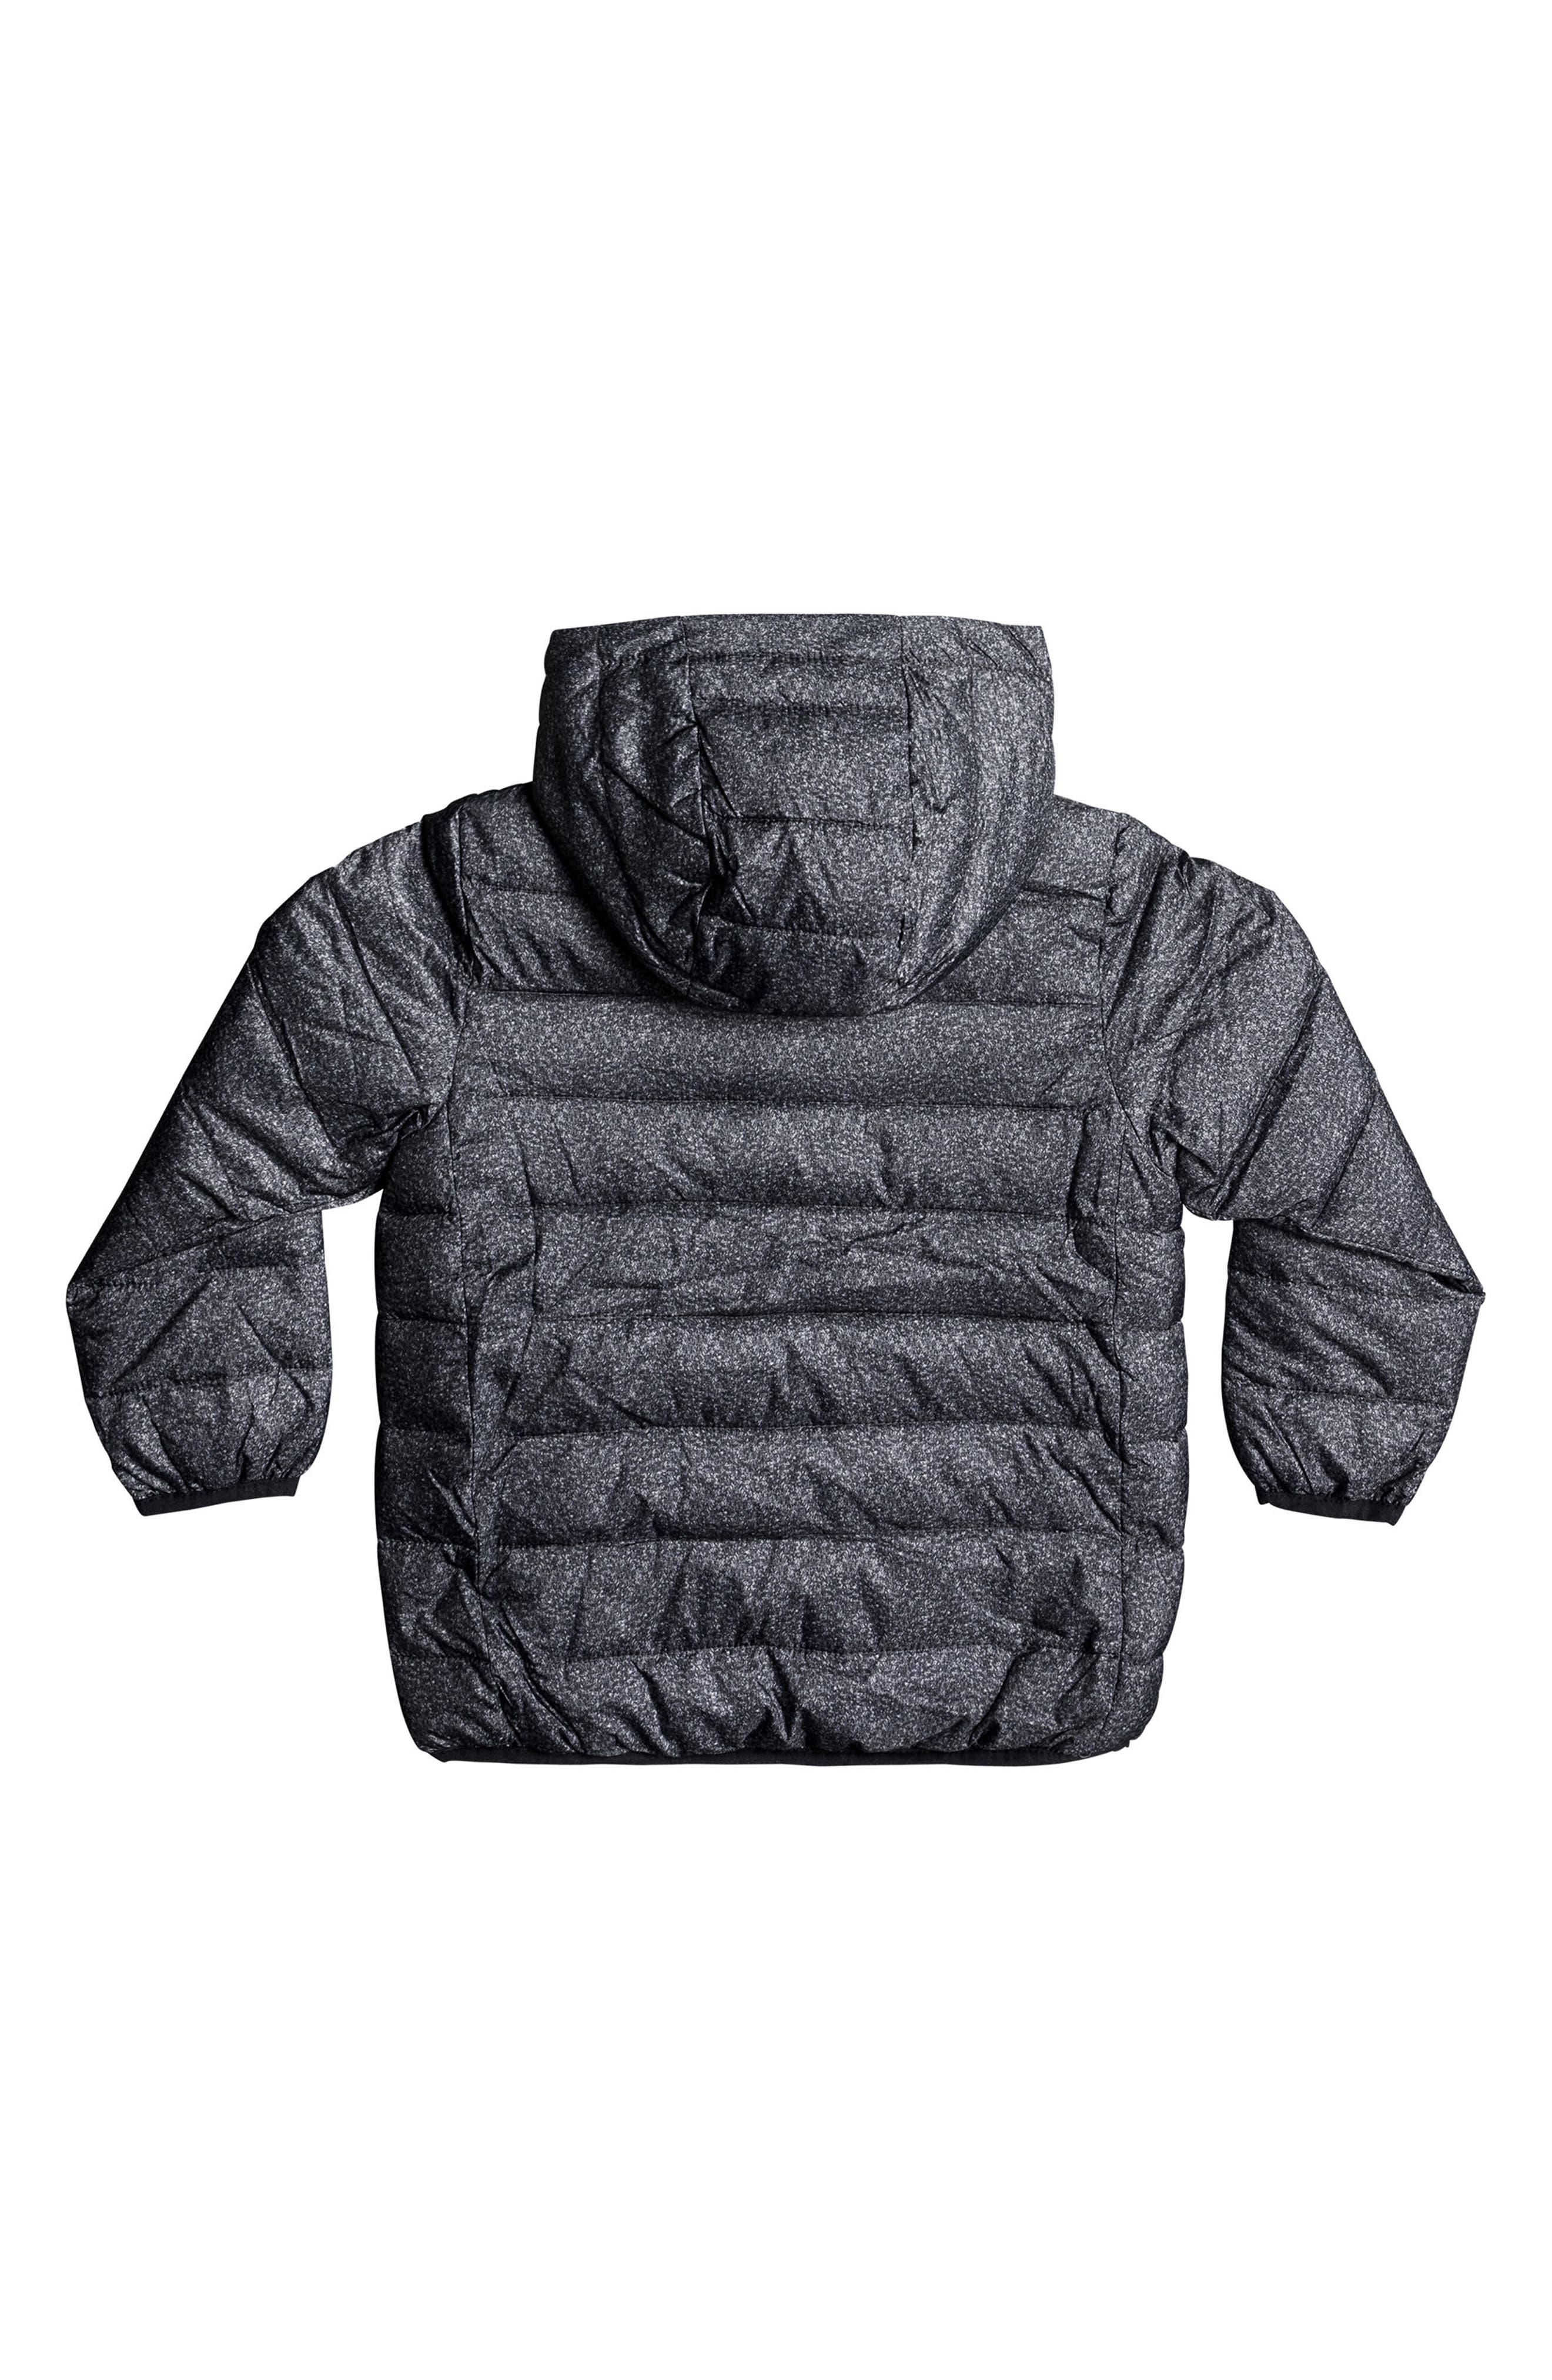 Quicksilver Scaly Water-Resistant Hooded Puffer Jacket,                             Alternate thumbnail 2, color,                             Dark Grey Scaly